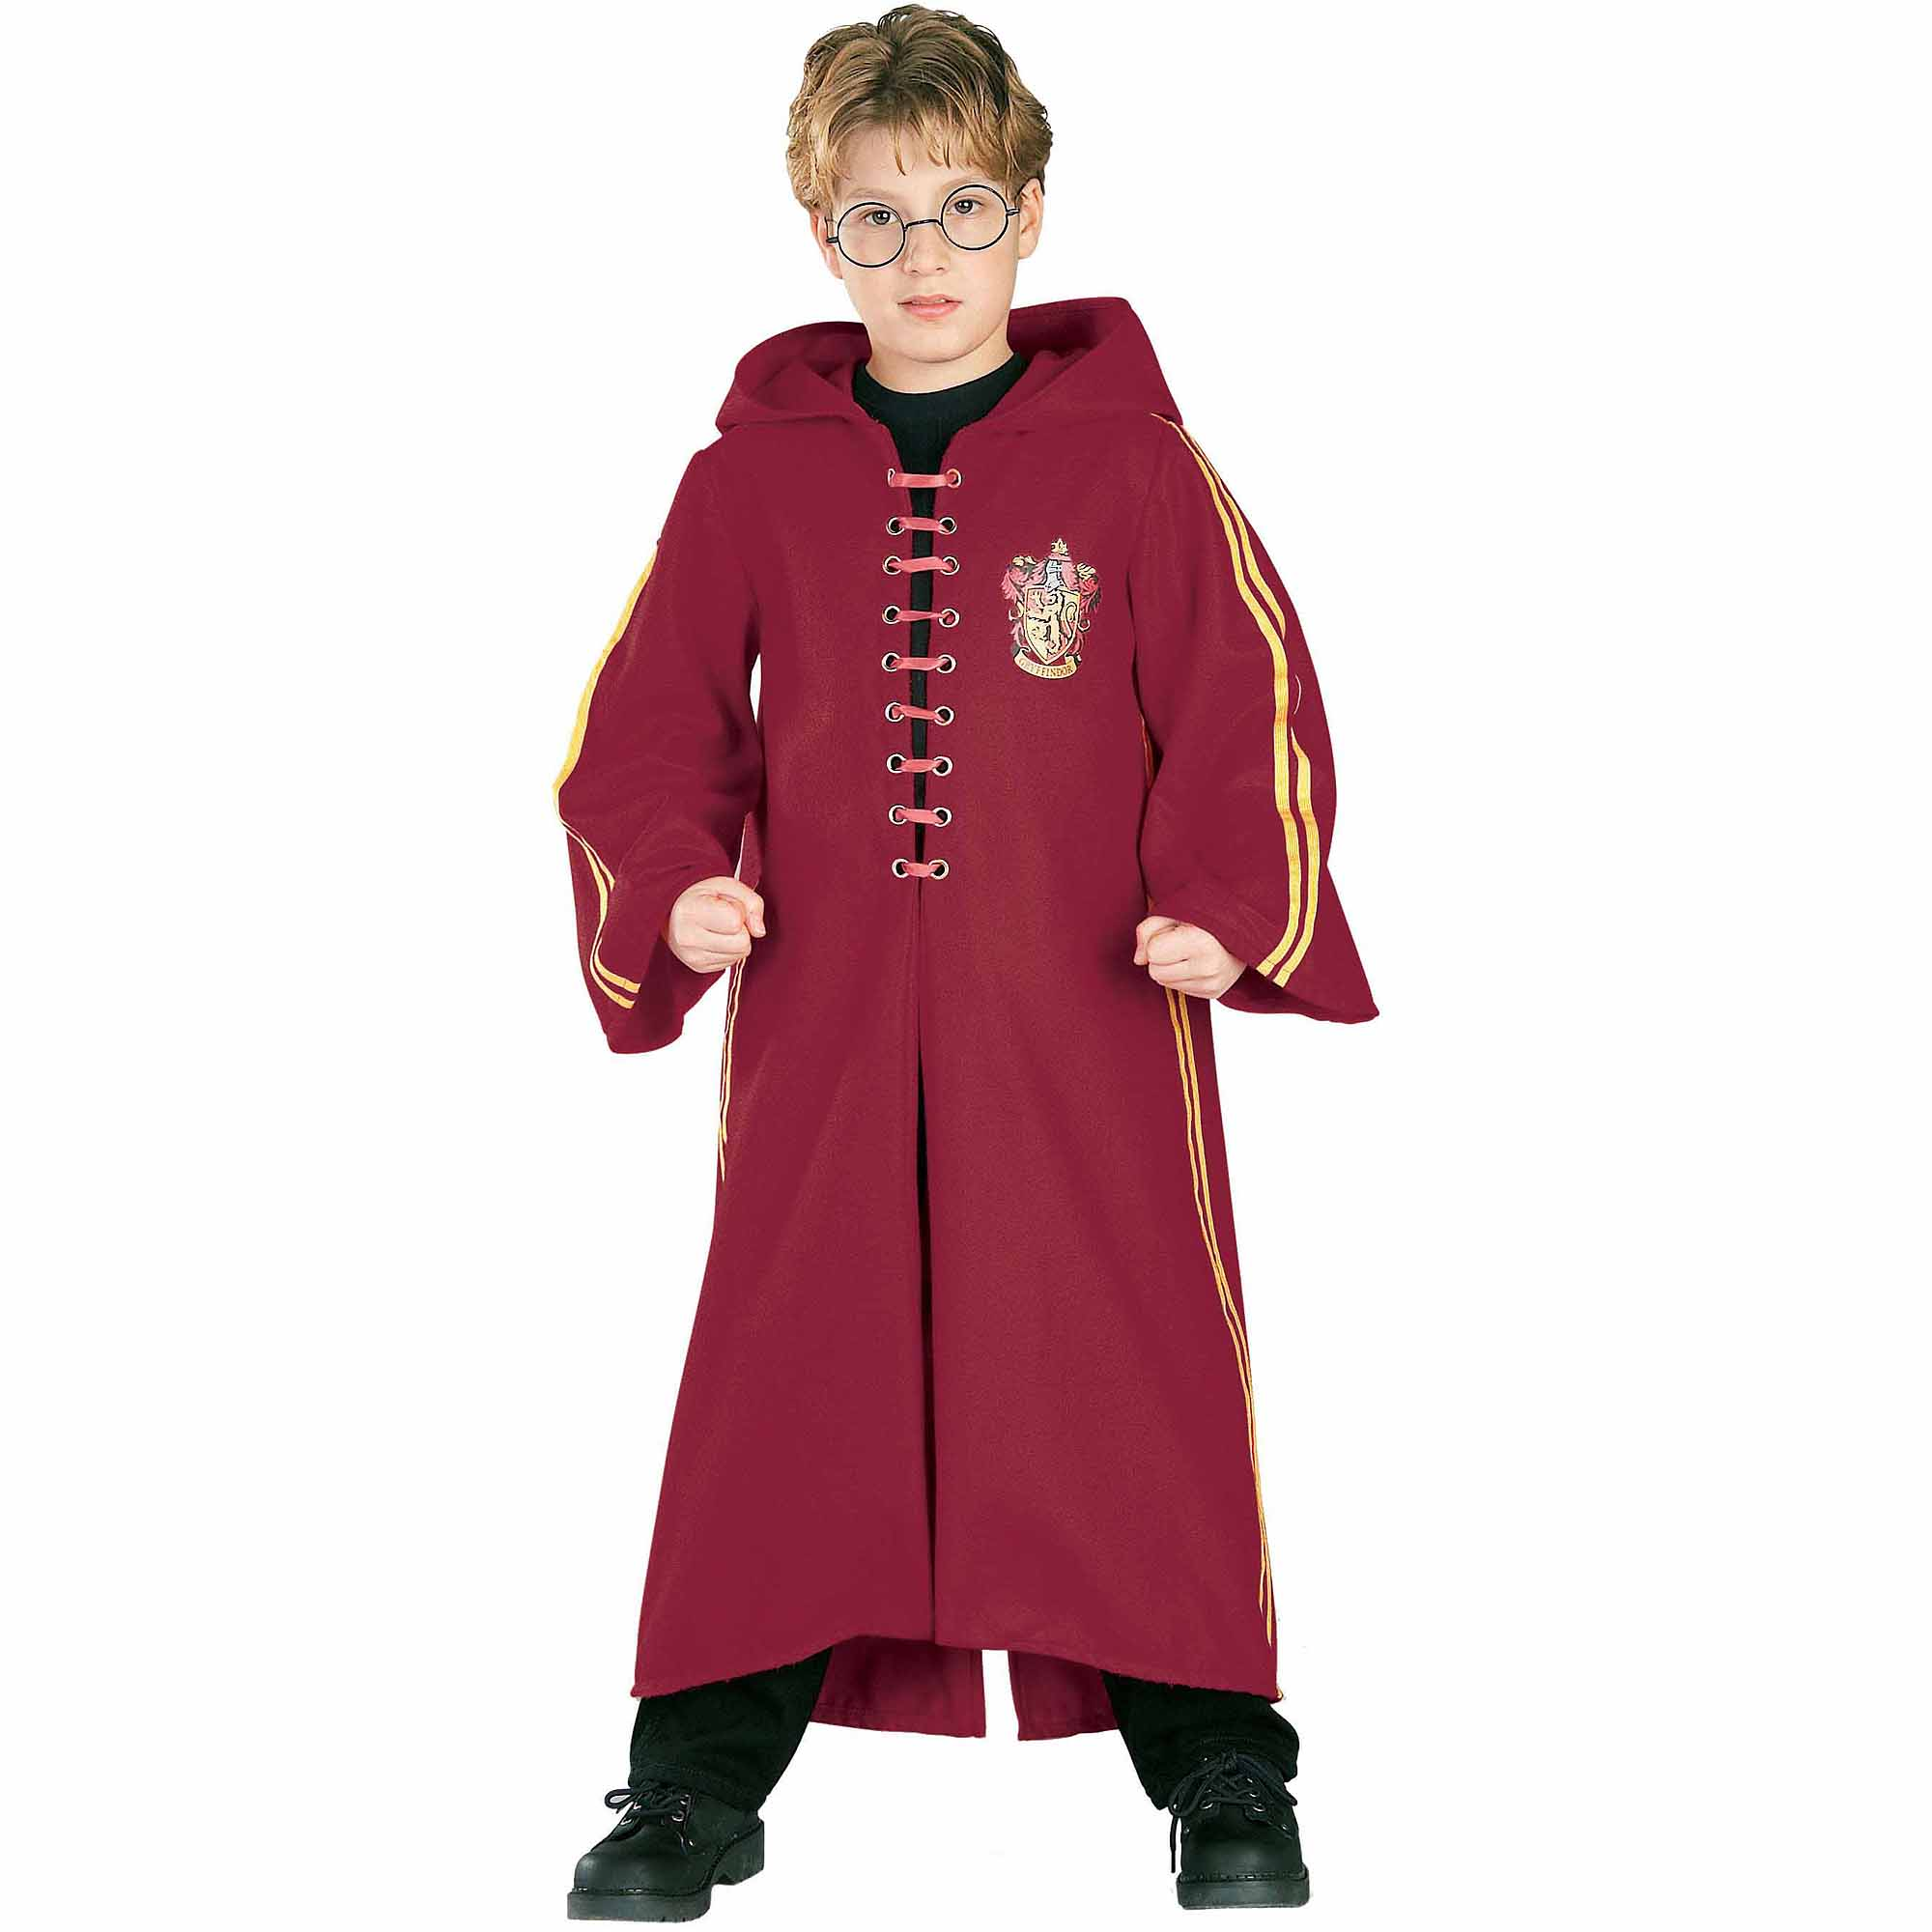 Harry Potter Quidditch Robe Super Deluxe Child Halloween Costume